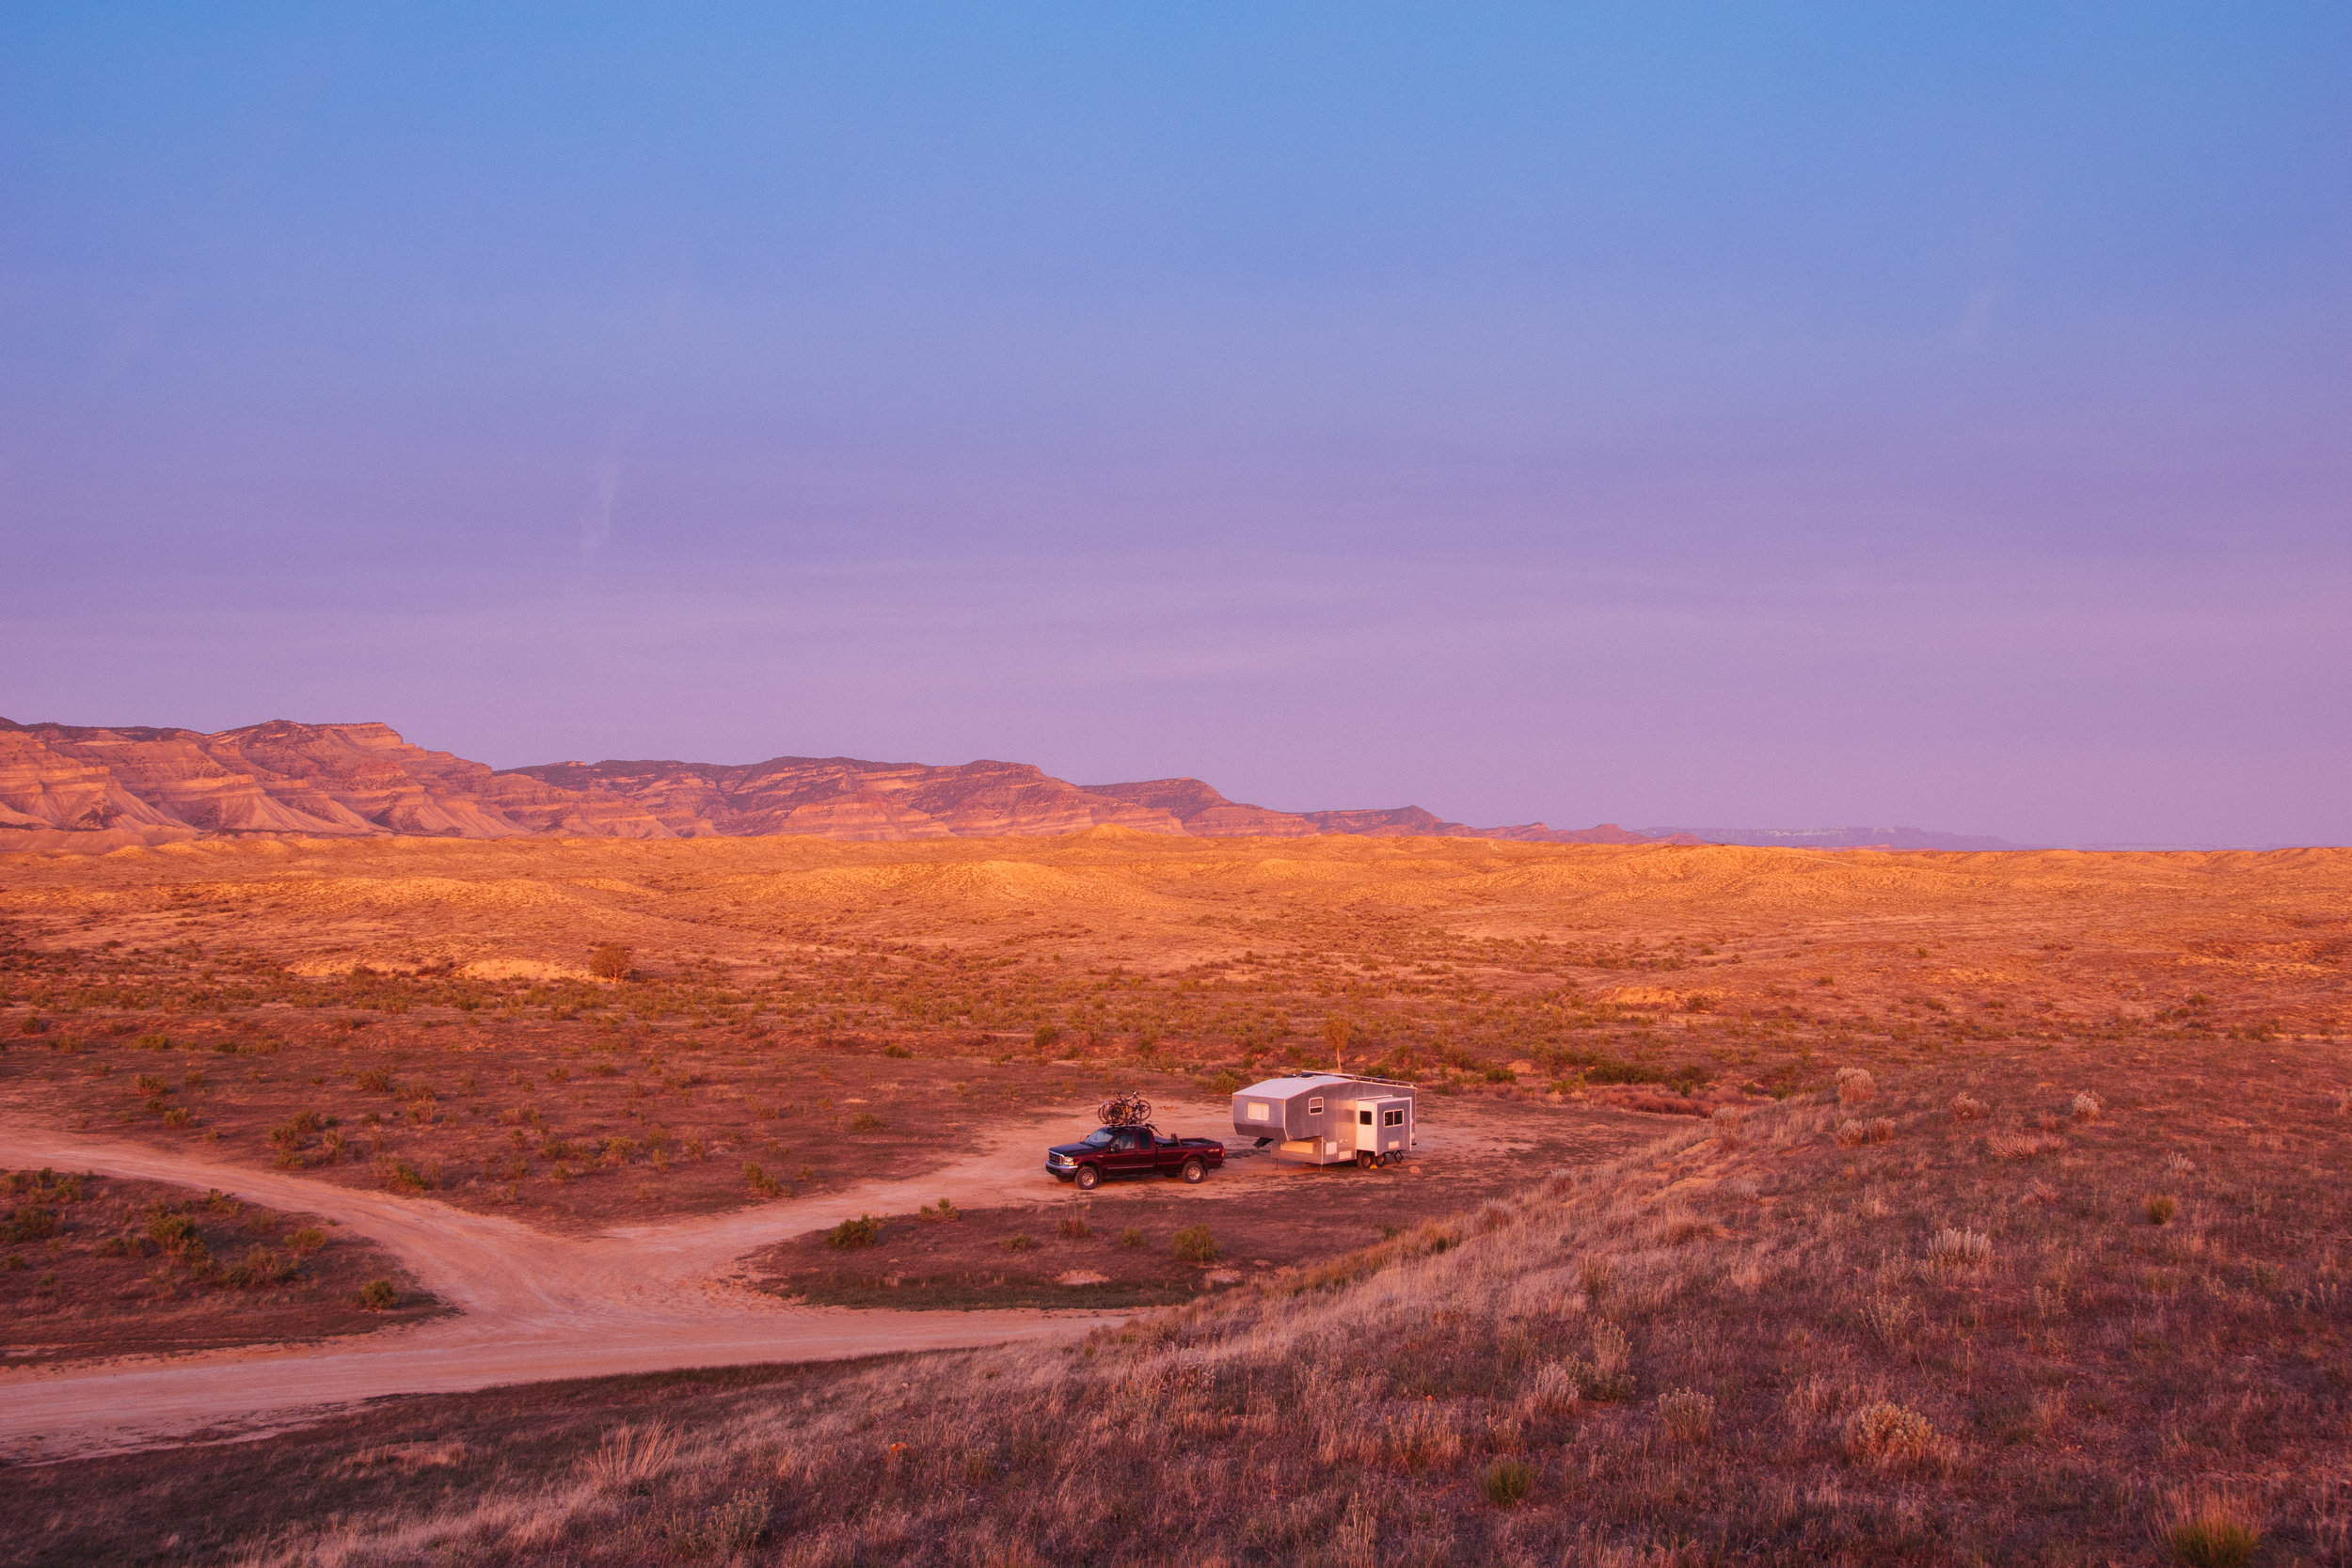 Boondocking means really getting away from the crowd; finding your own space using your own resources.